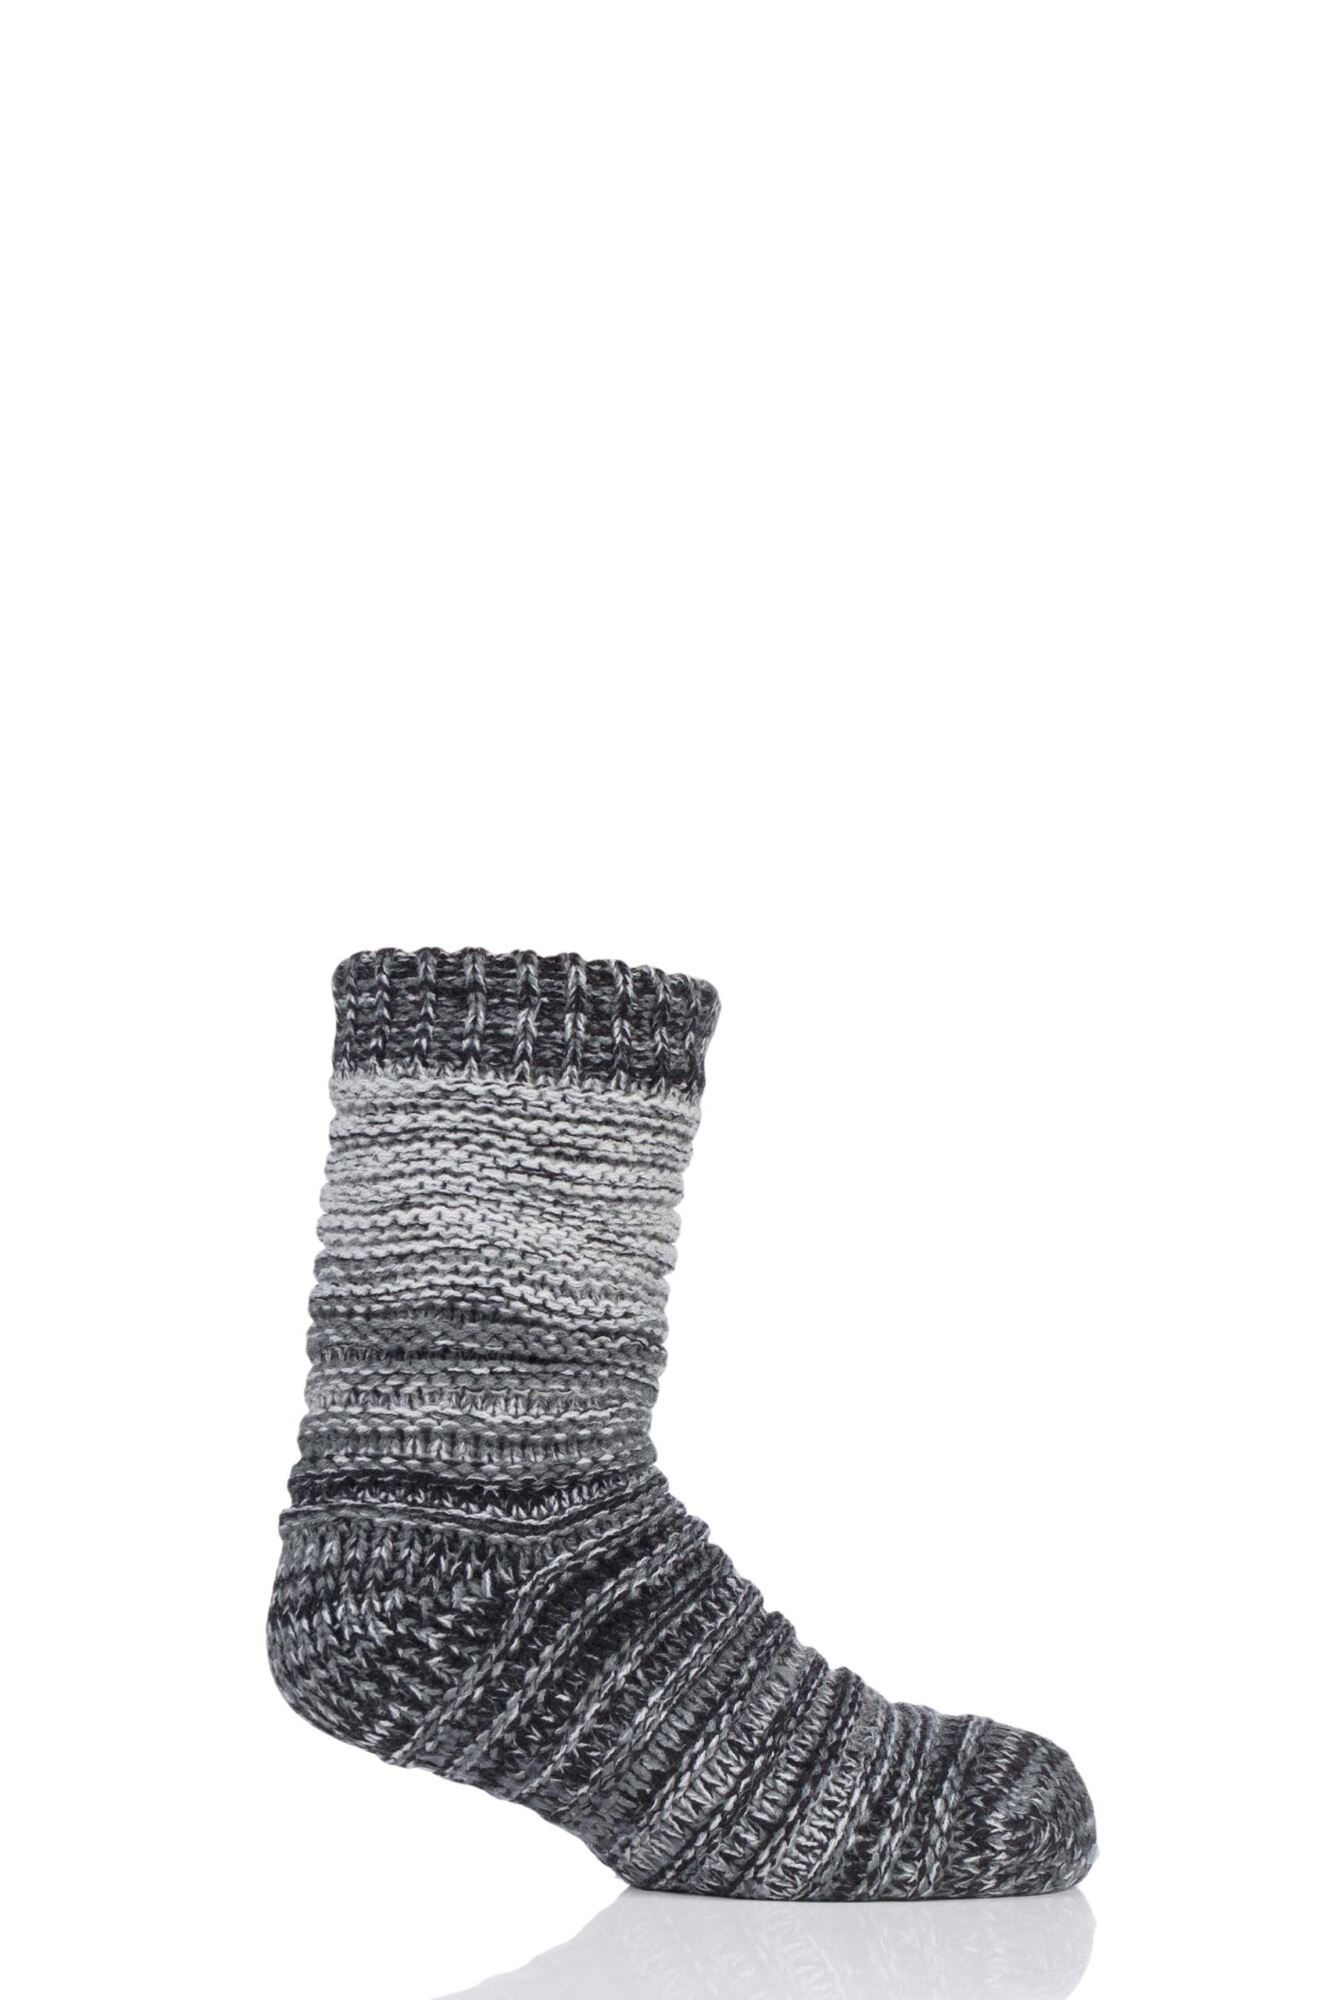 1 Pair Lounge Socks Men's - SOCKSHOP